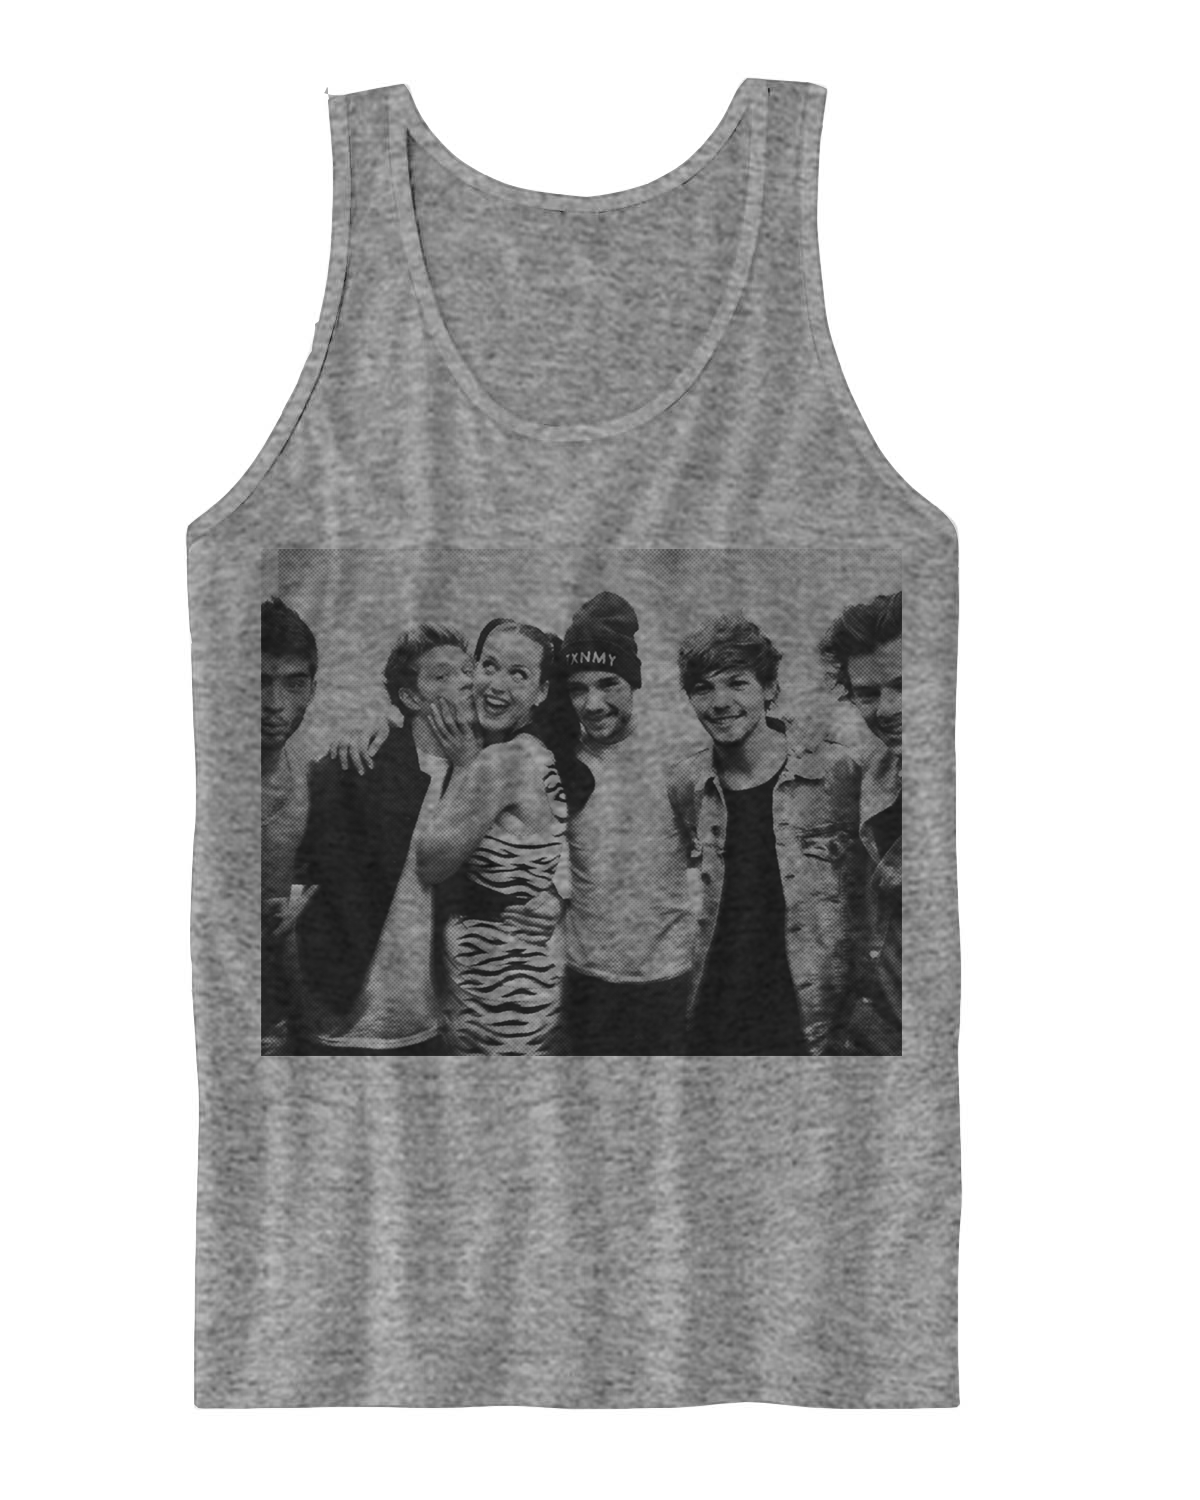 1D & KATY PERRY TANK TOP CELEBRITY SHIRTS HIPPY SHIRTS FREE T ...